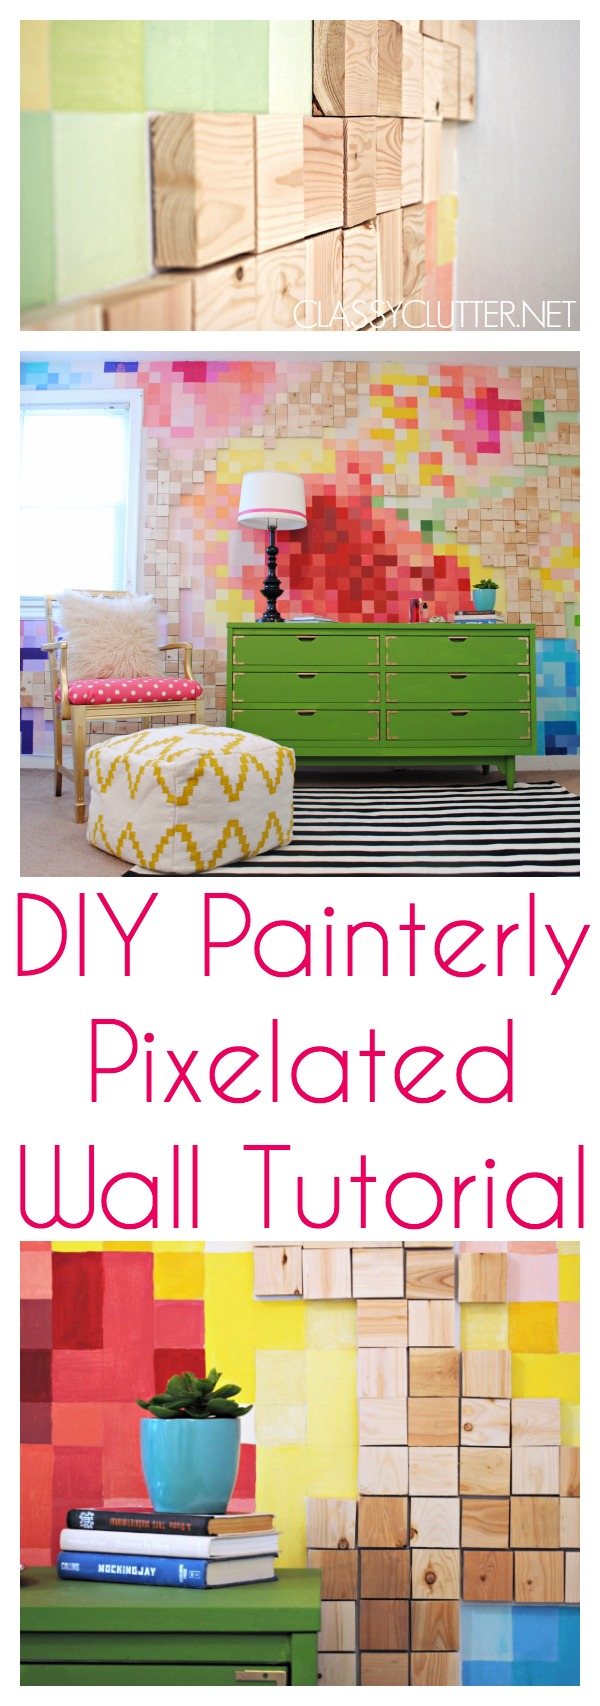 DIY-Painterly-Pixelated-Wall-Tutorial